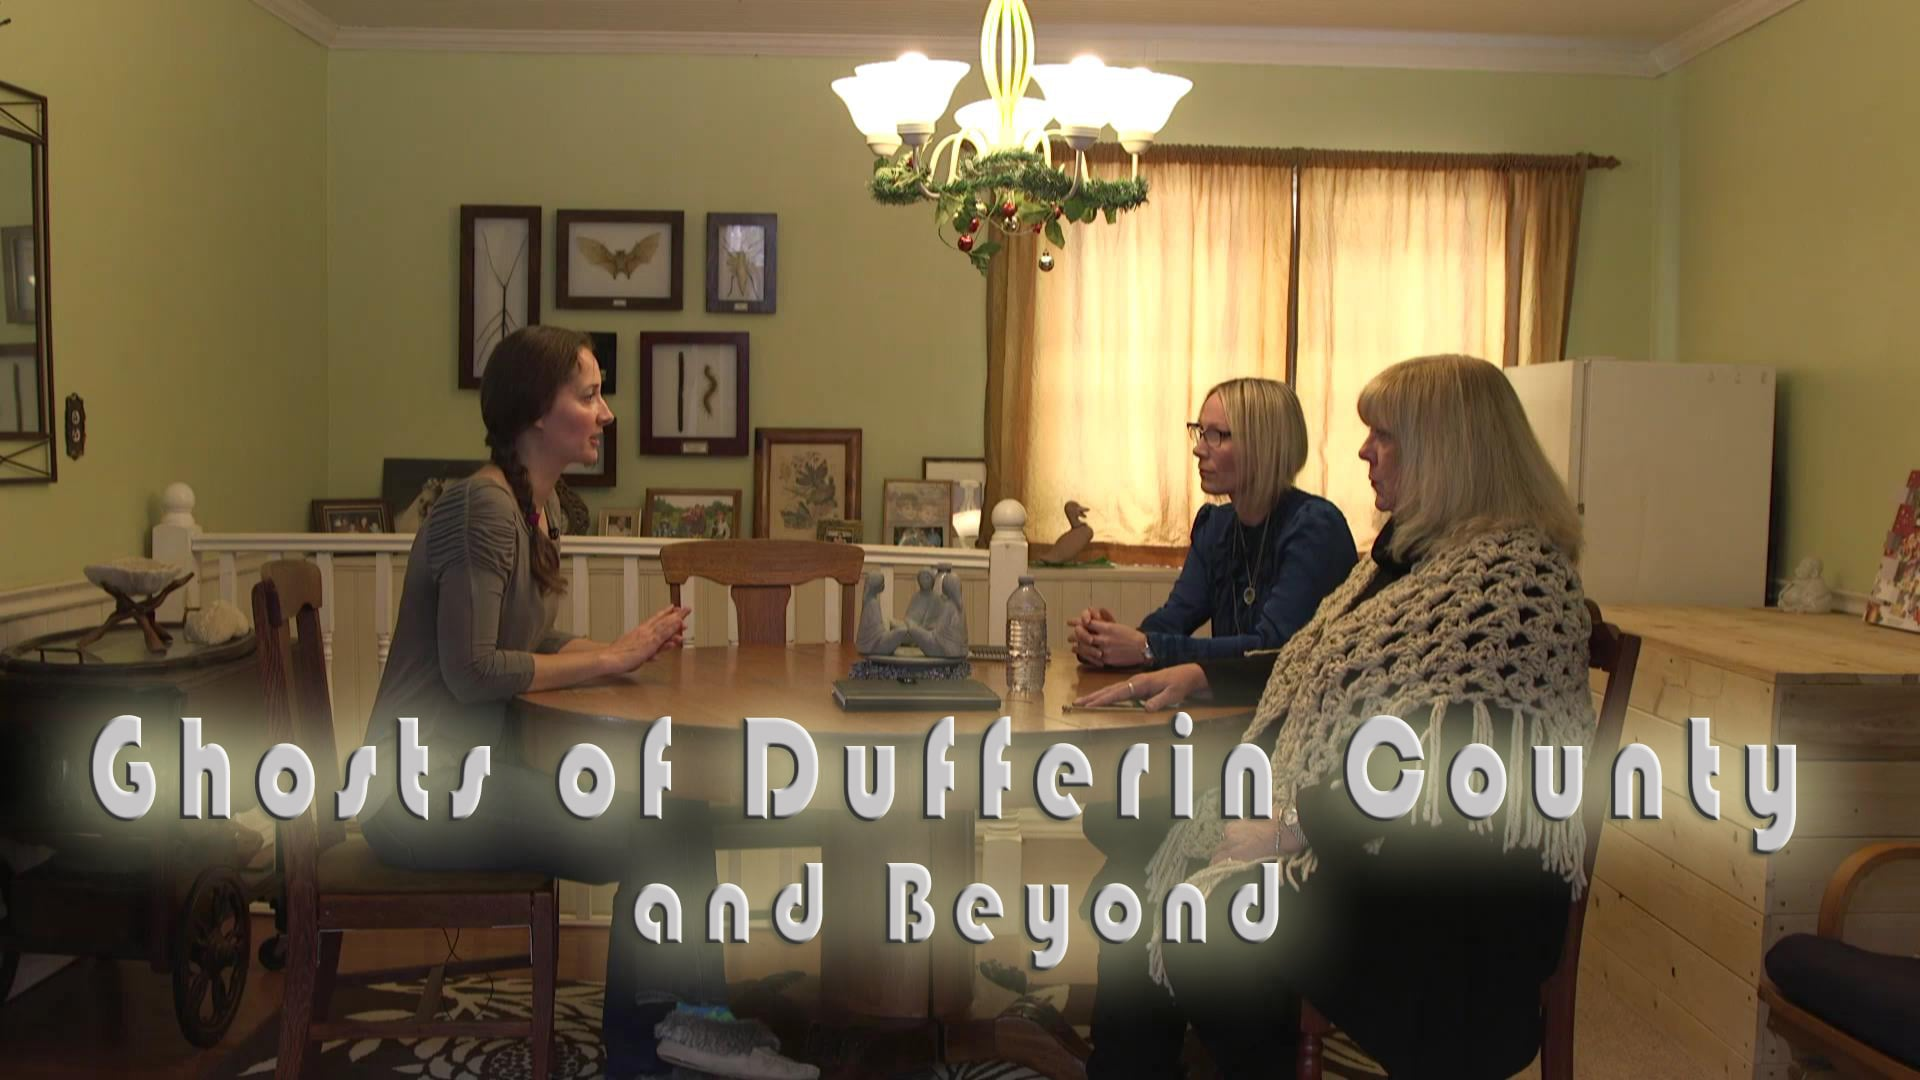 Ghosts of Dufferin County and Beyond